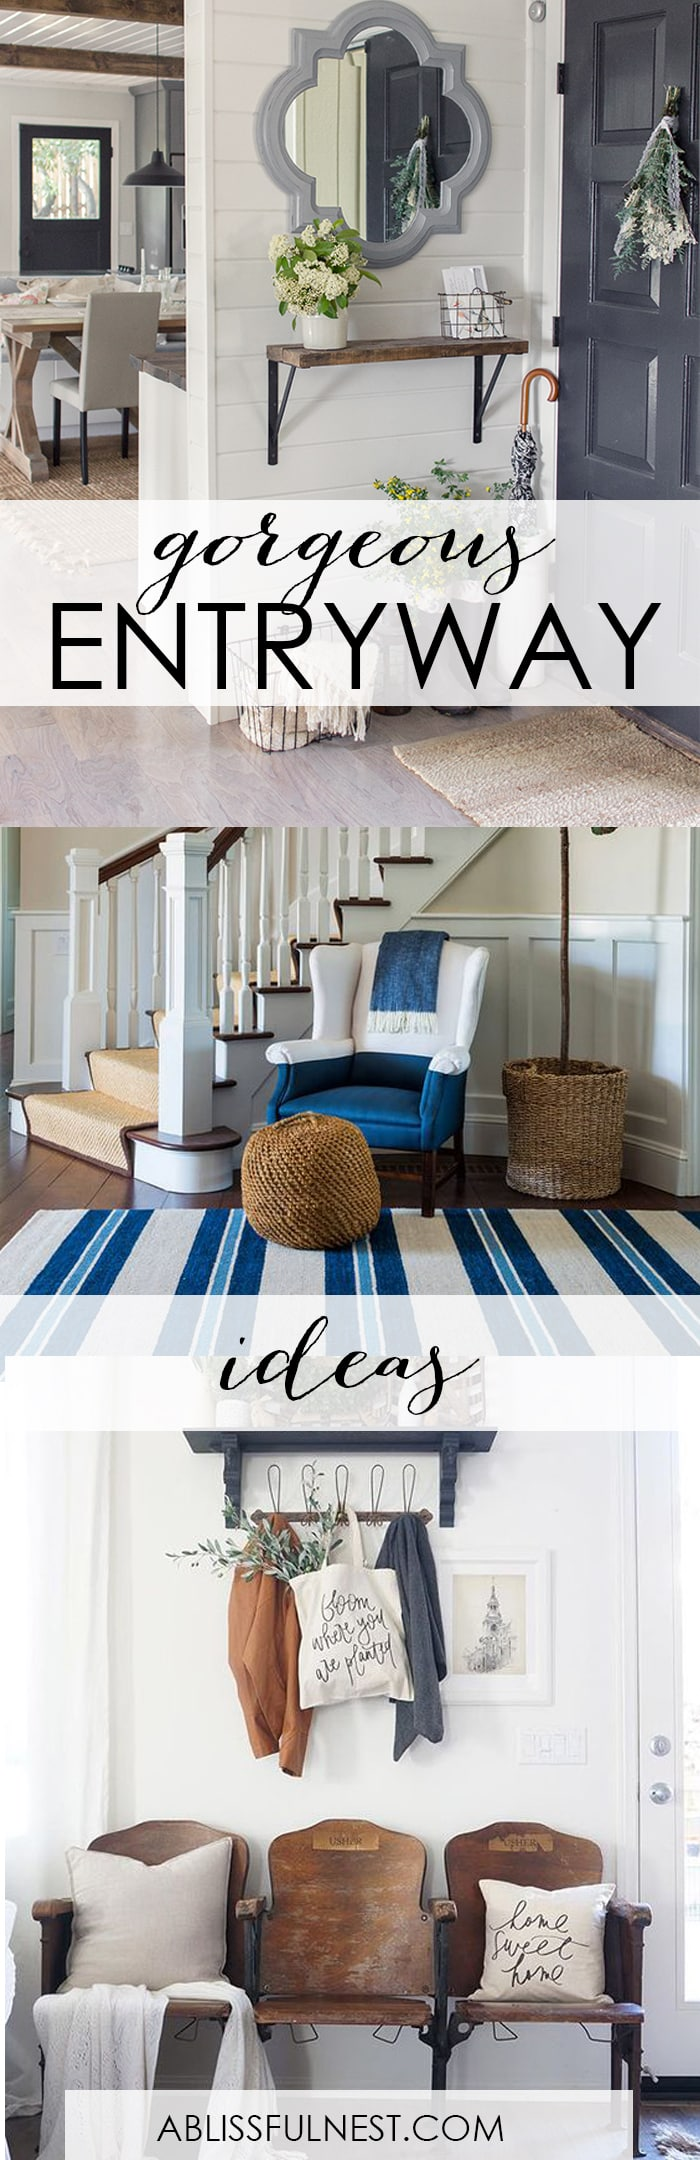 freshen up your home with these gorgeous entryway ideas from coastal to farmhouse and modern